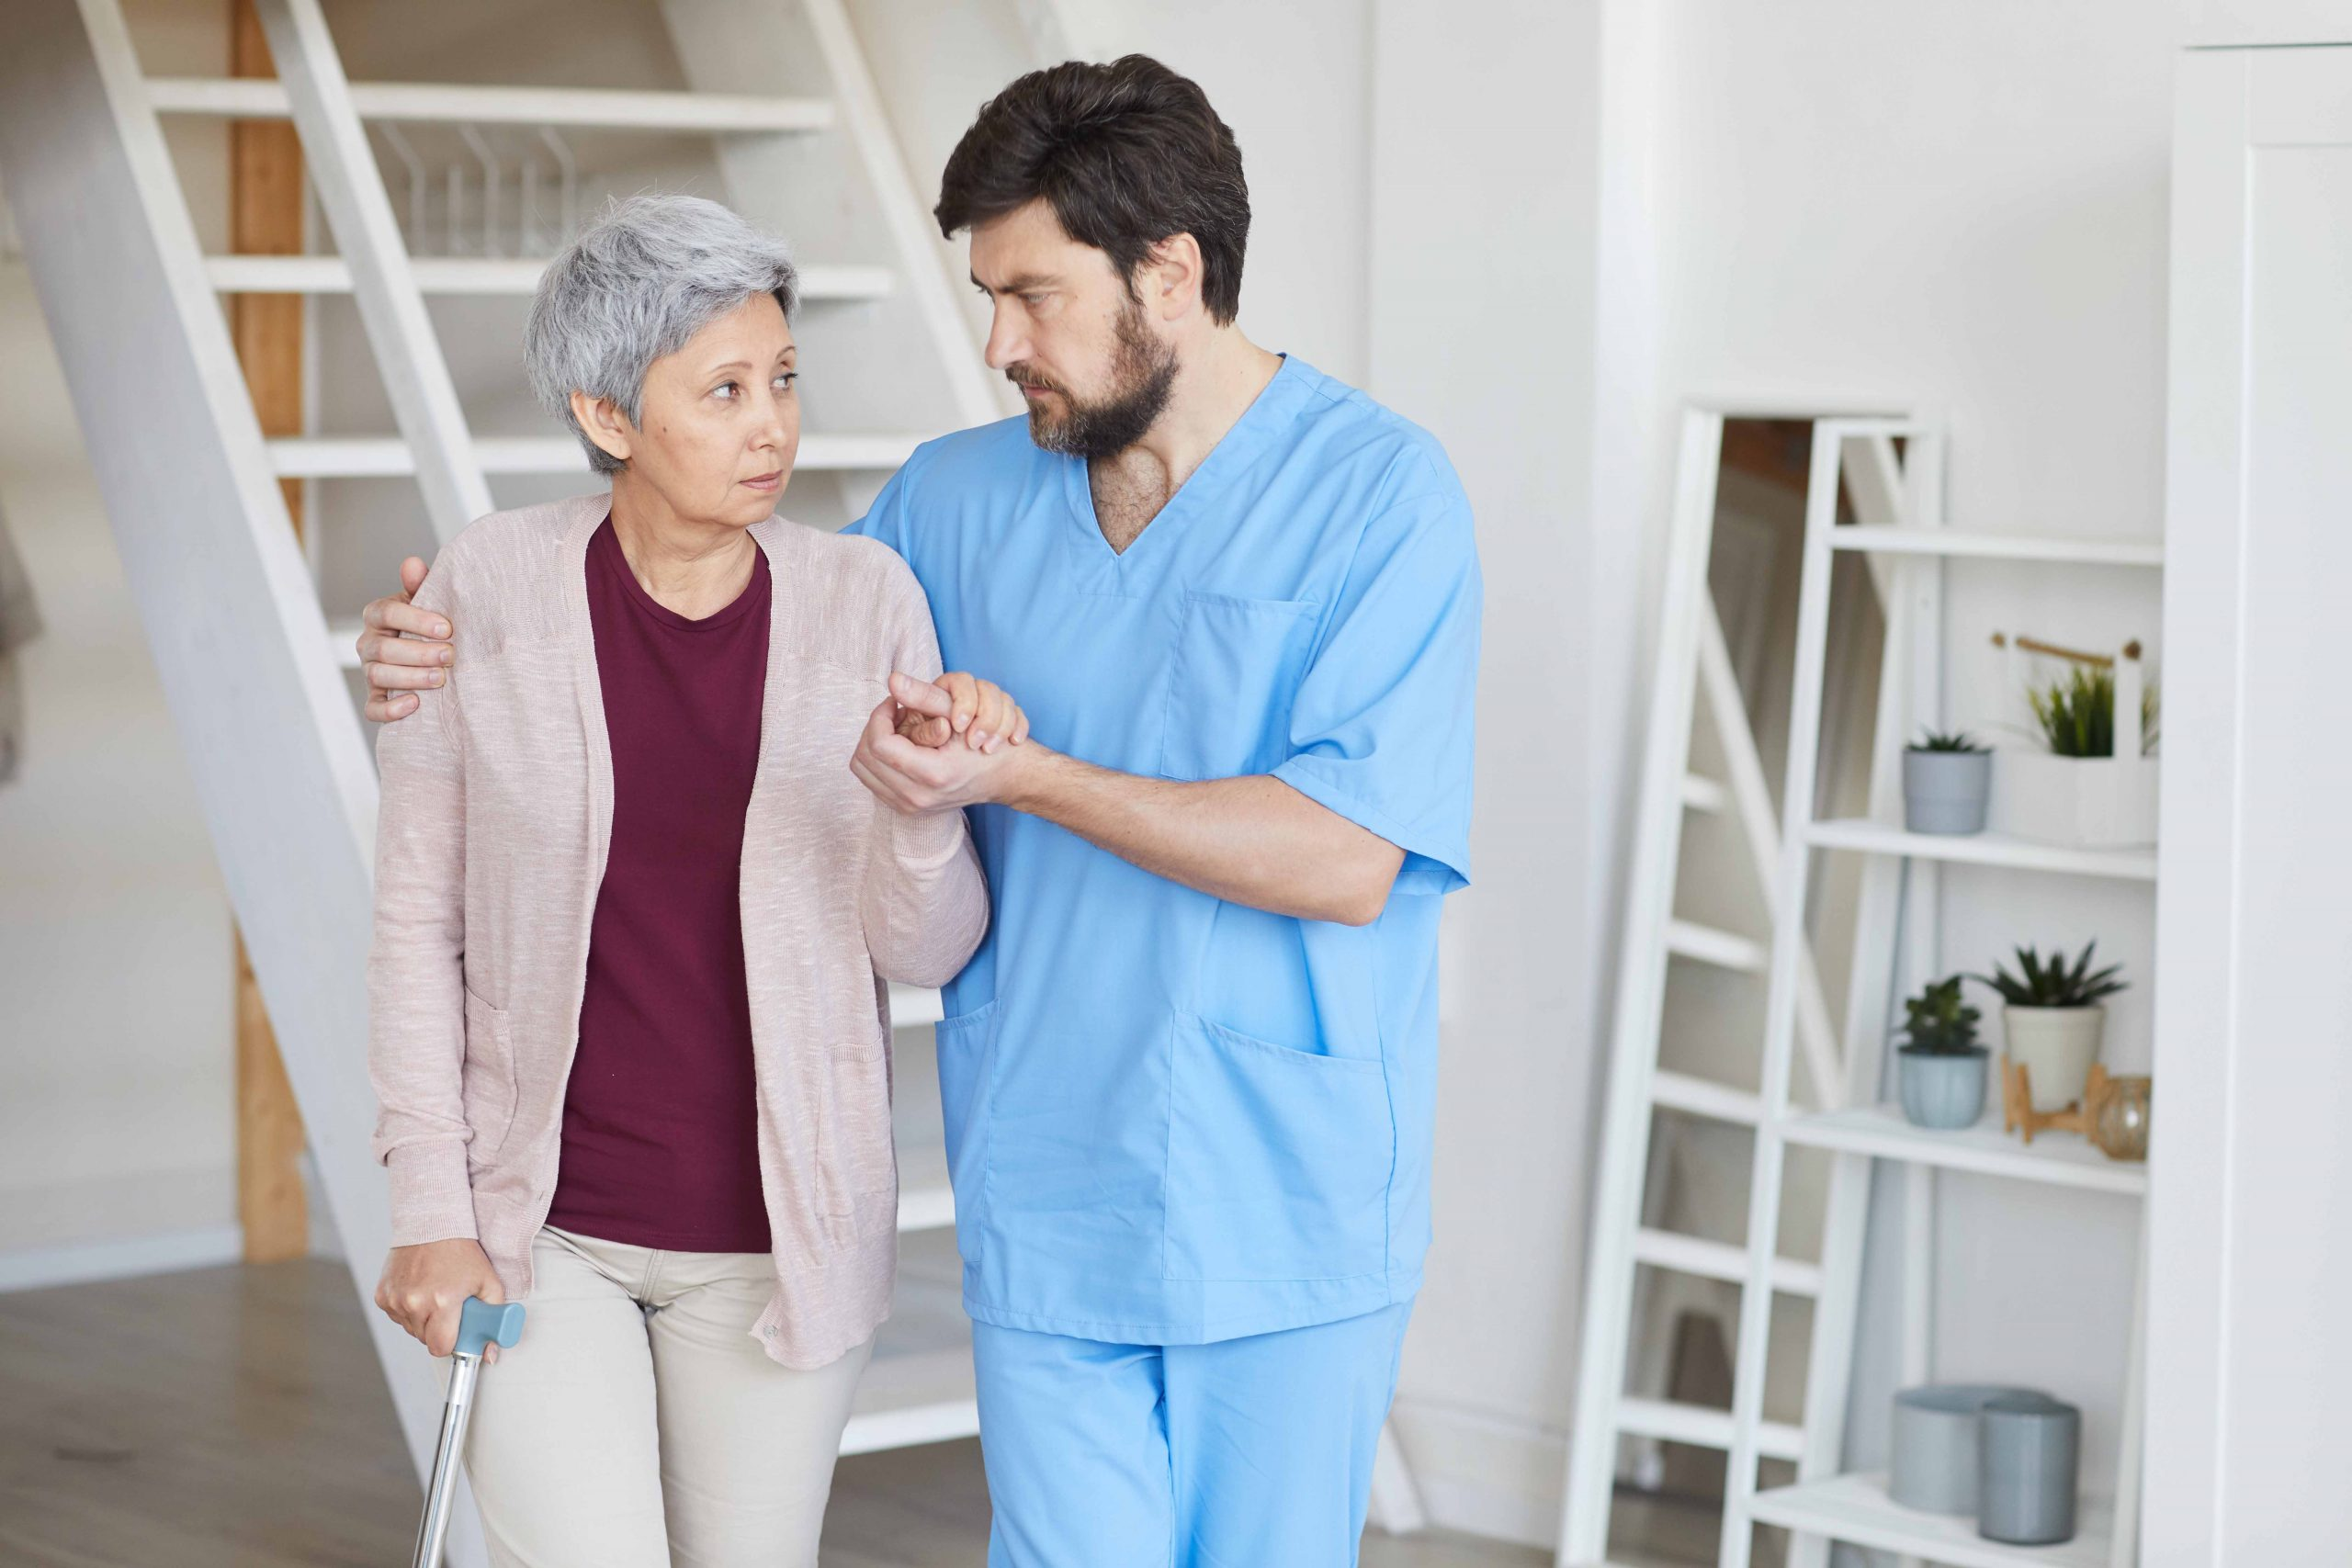 Mature bearded man in uniform caring for senior woman he helping her to move around the room